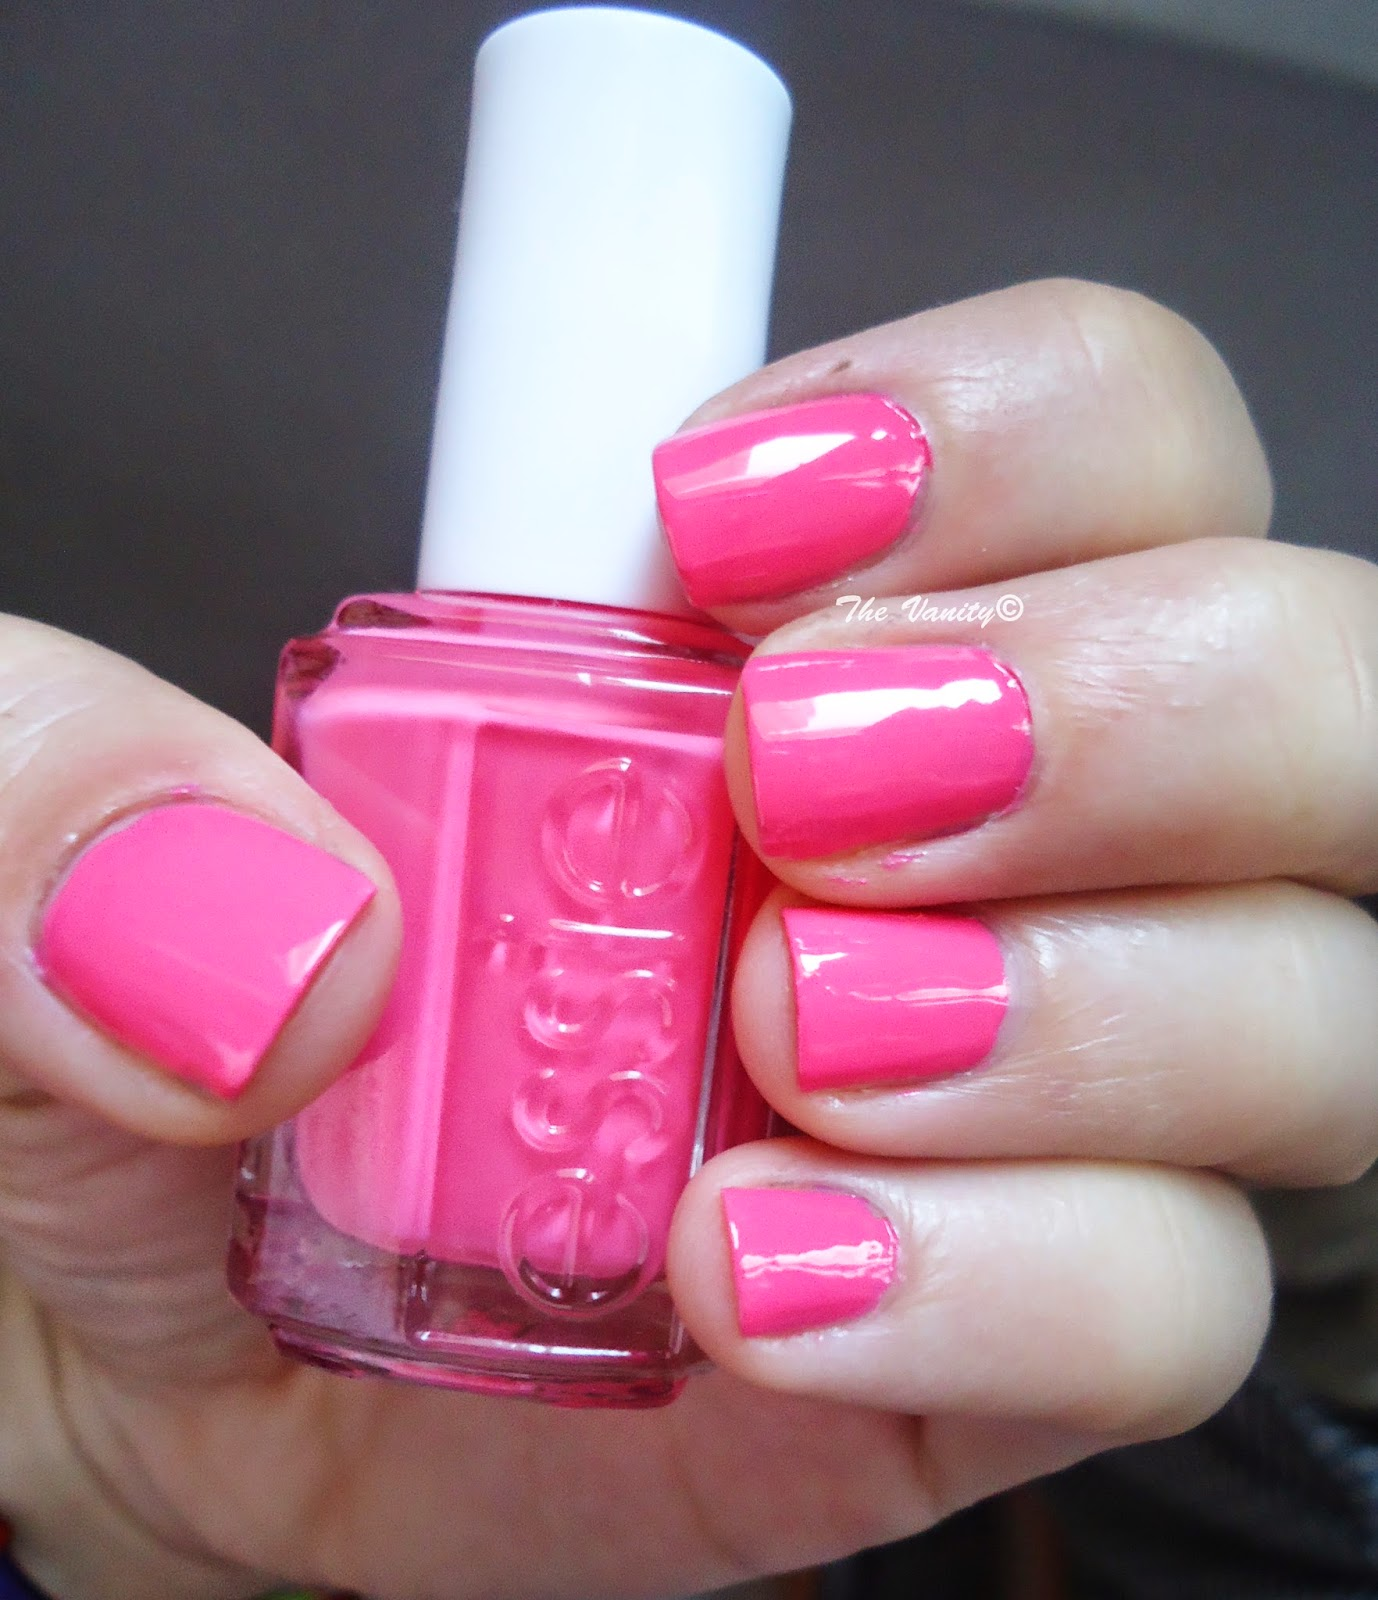 Essie Nail Polish in Nice Package review | The Vanity